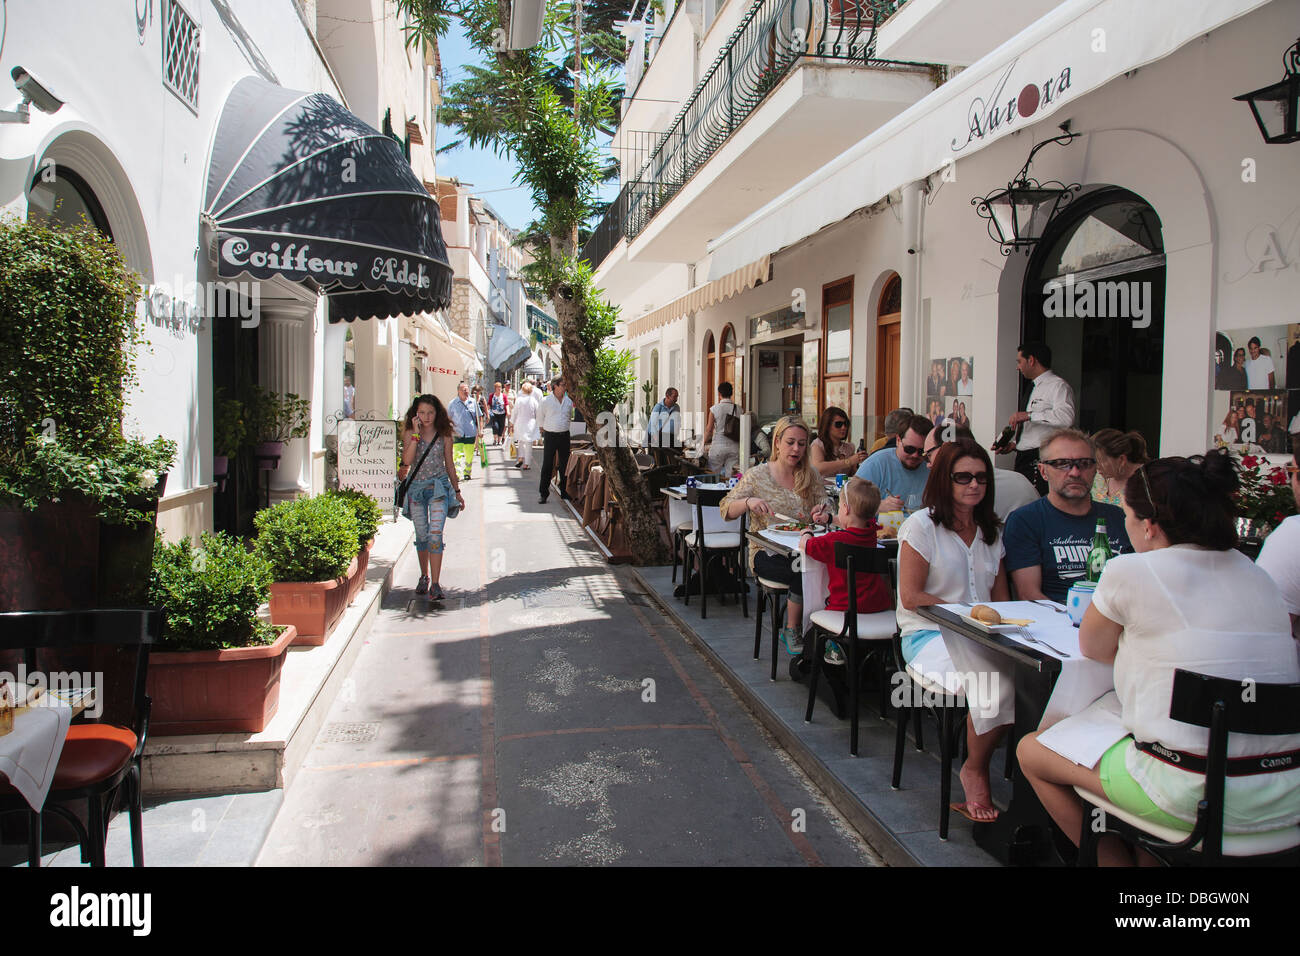 A cafe street scene on the island of capri, Italy. - Stock Image